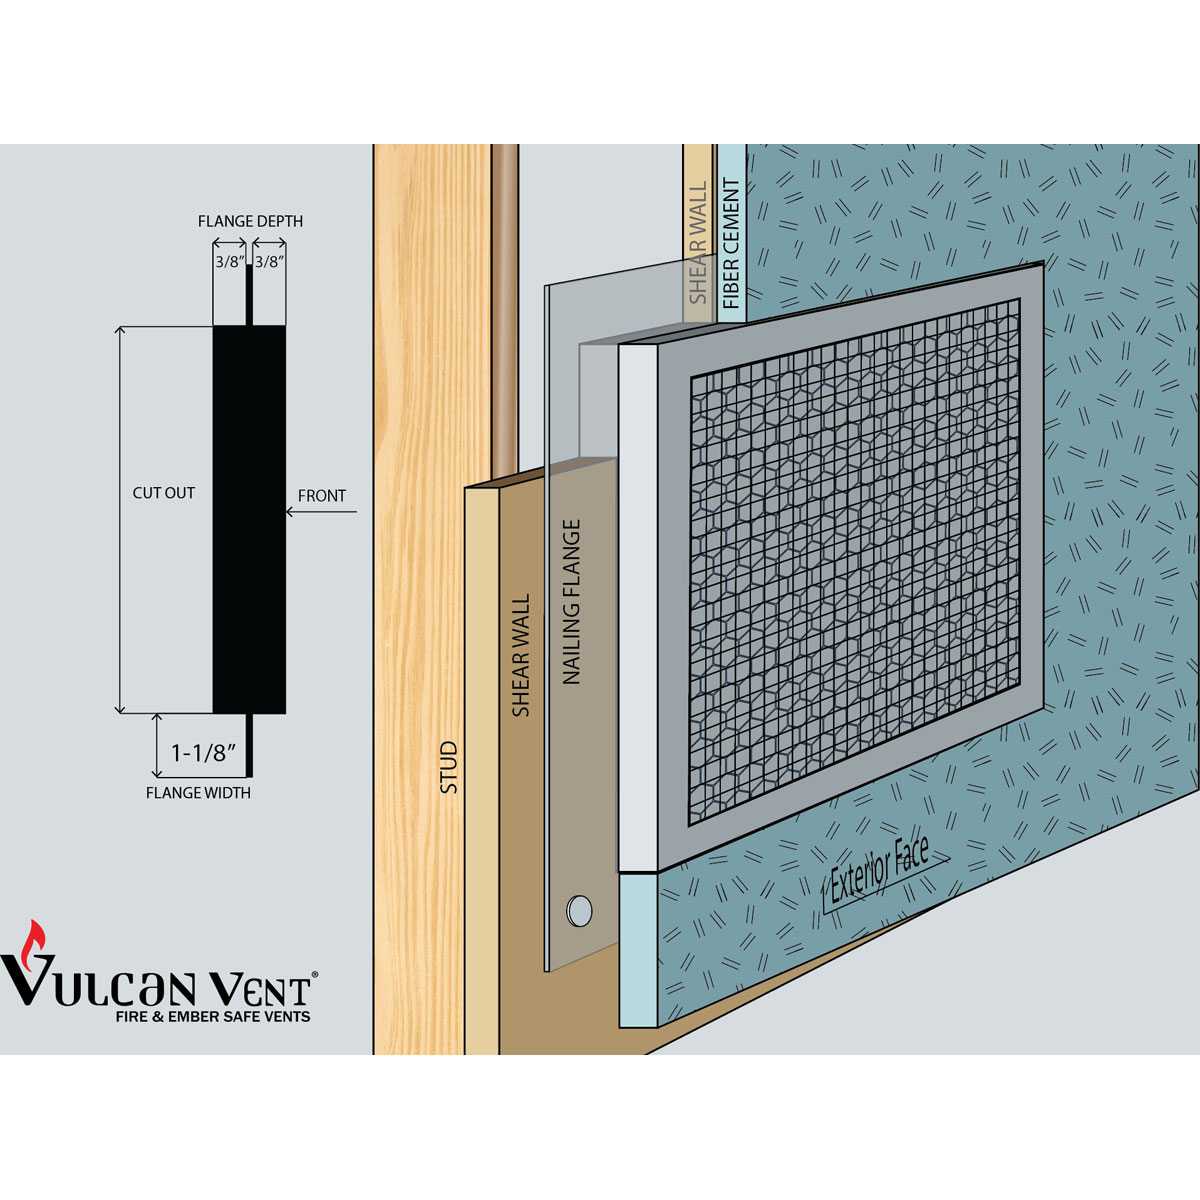 3 1/2-Inch H x 22-Inch W (41 Sq  In  Venting Area) Vulcan Fire Stopping  Eave/Soffit Vent 3/8-Inch Recessed Flange for Fiber Cement, Galvanized Steel